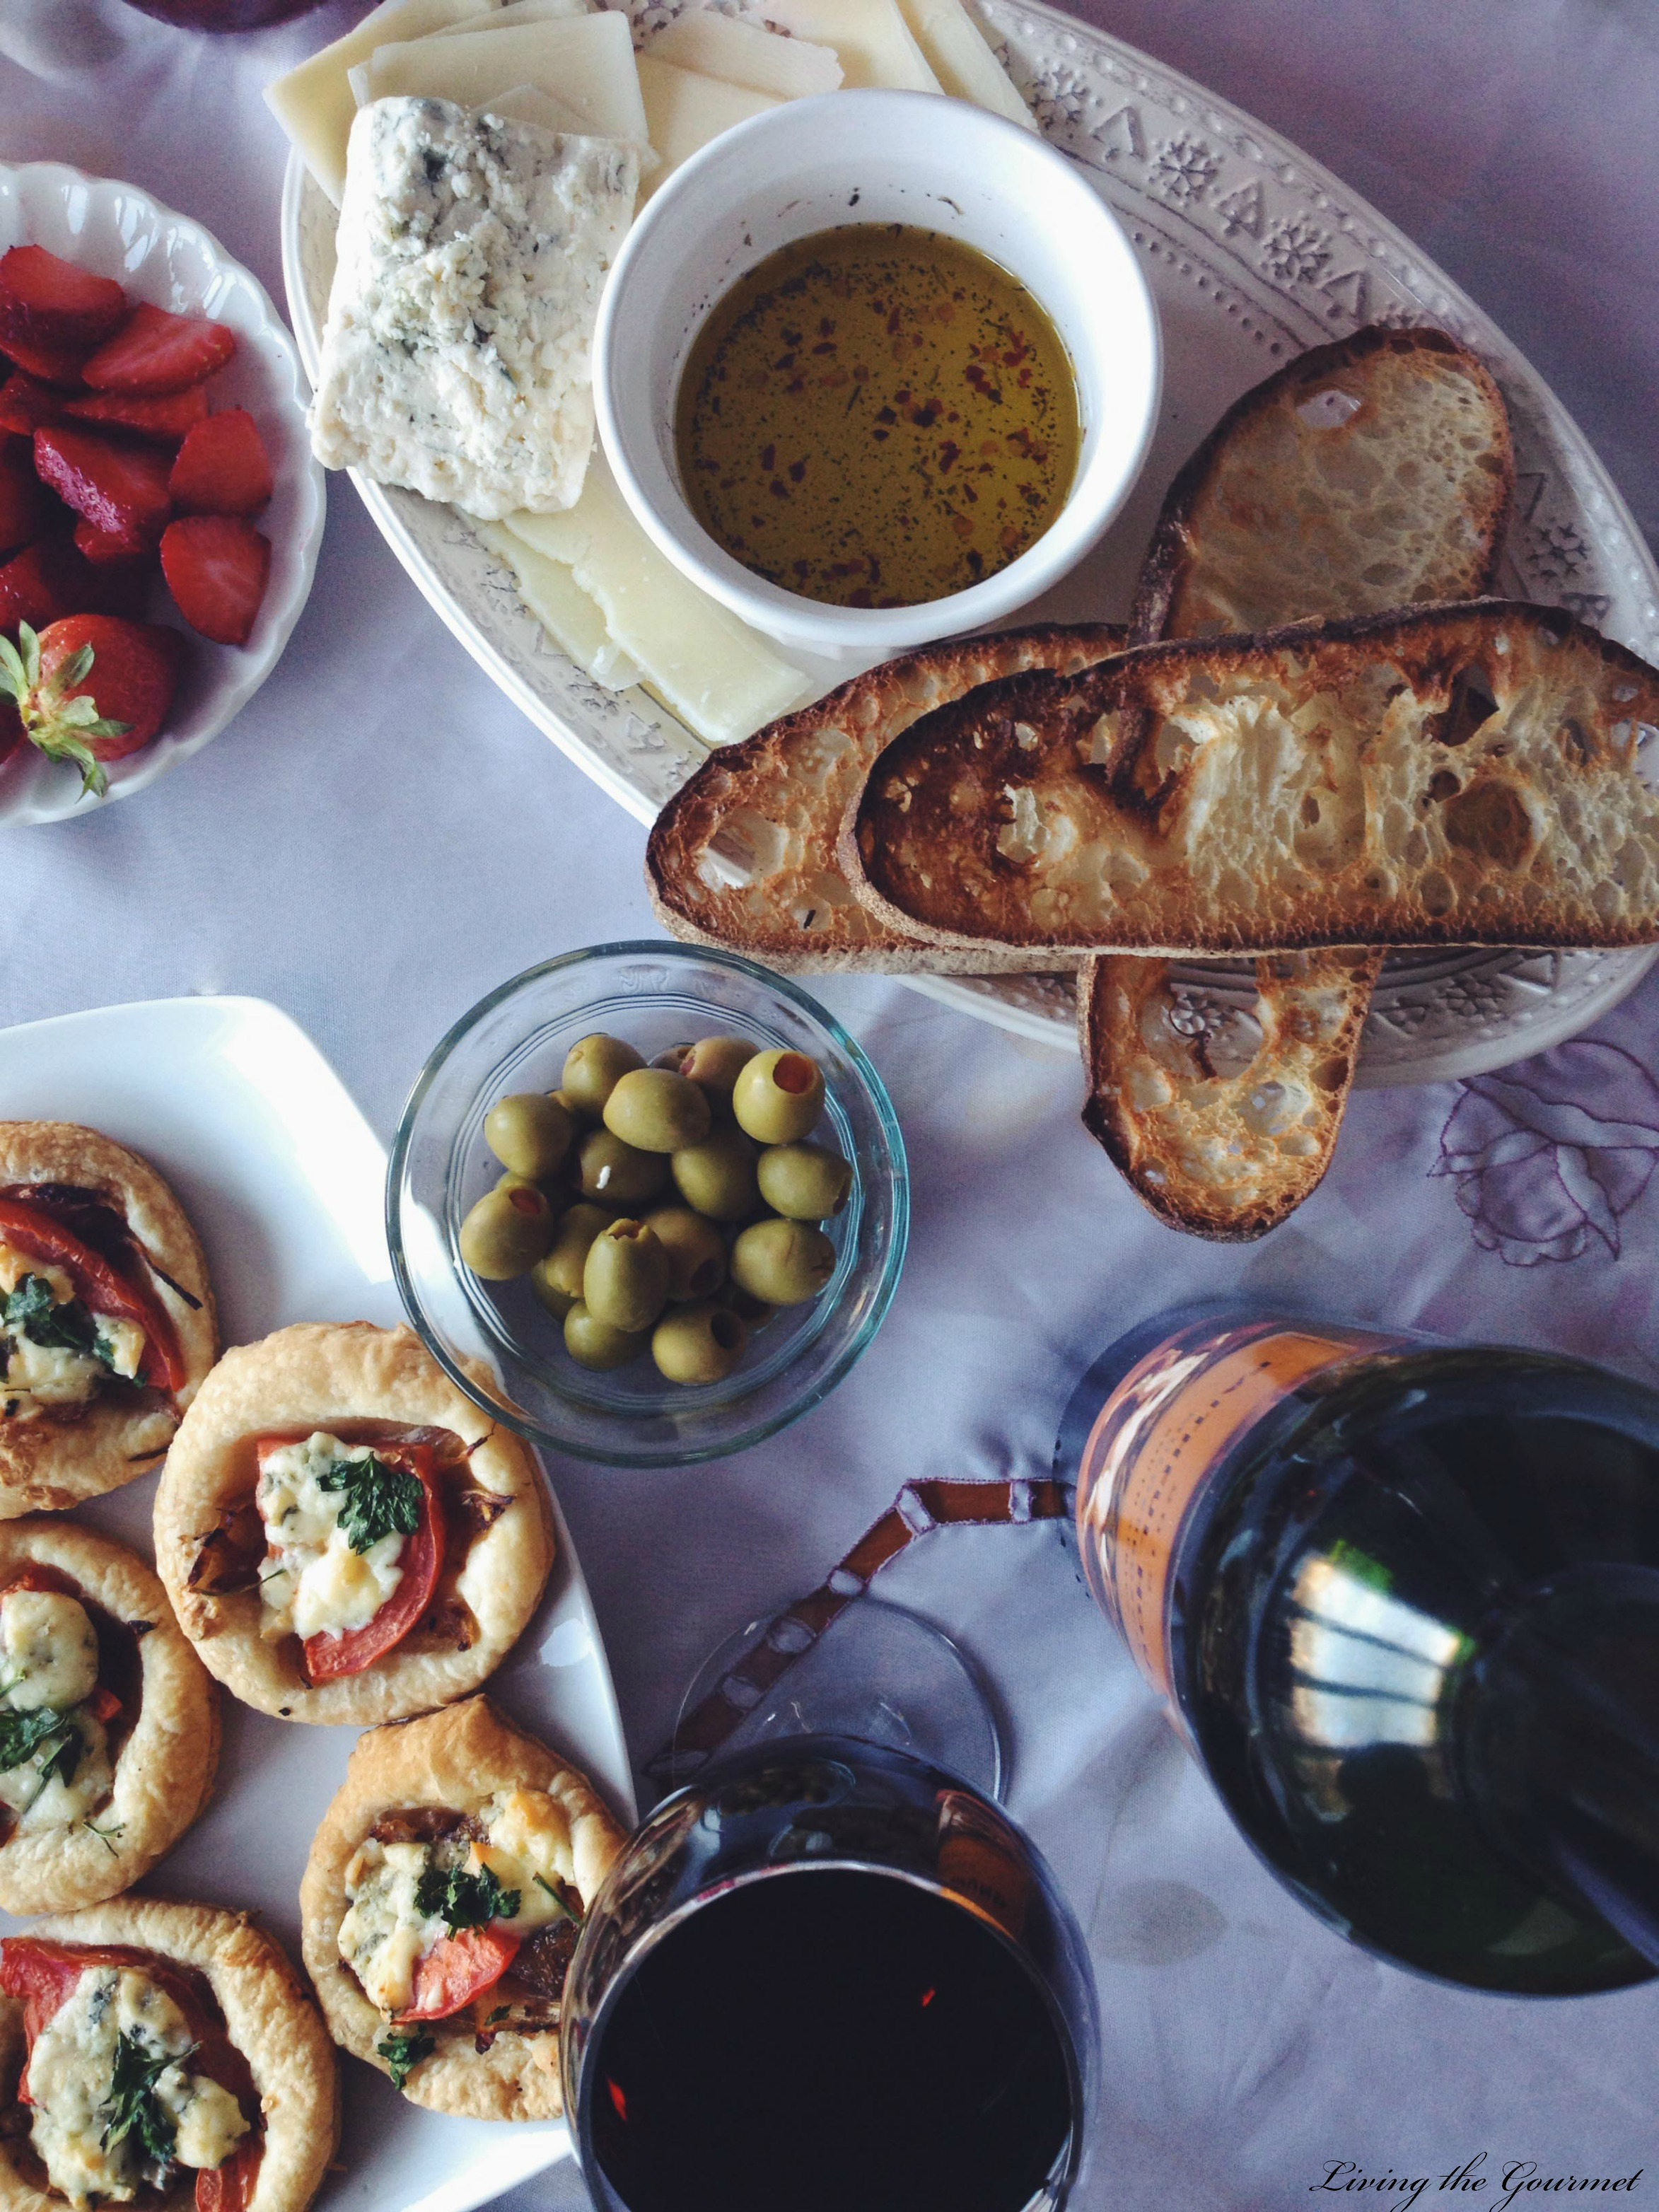 Living the Gourmet: Wine Pairings & Hors d'Oeuvres